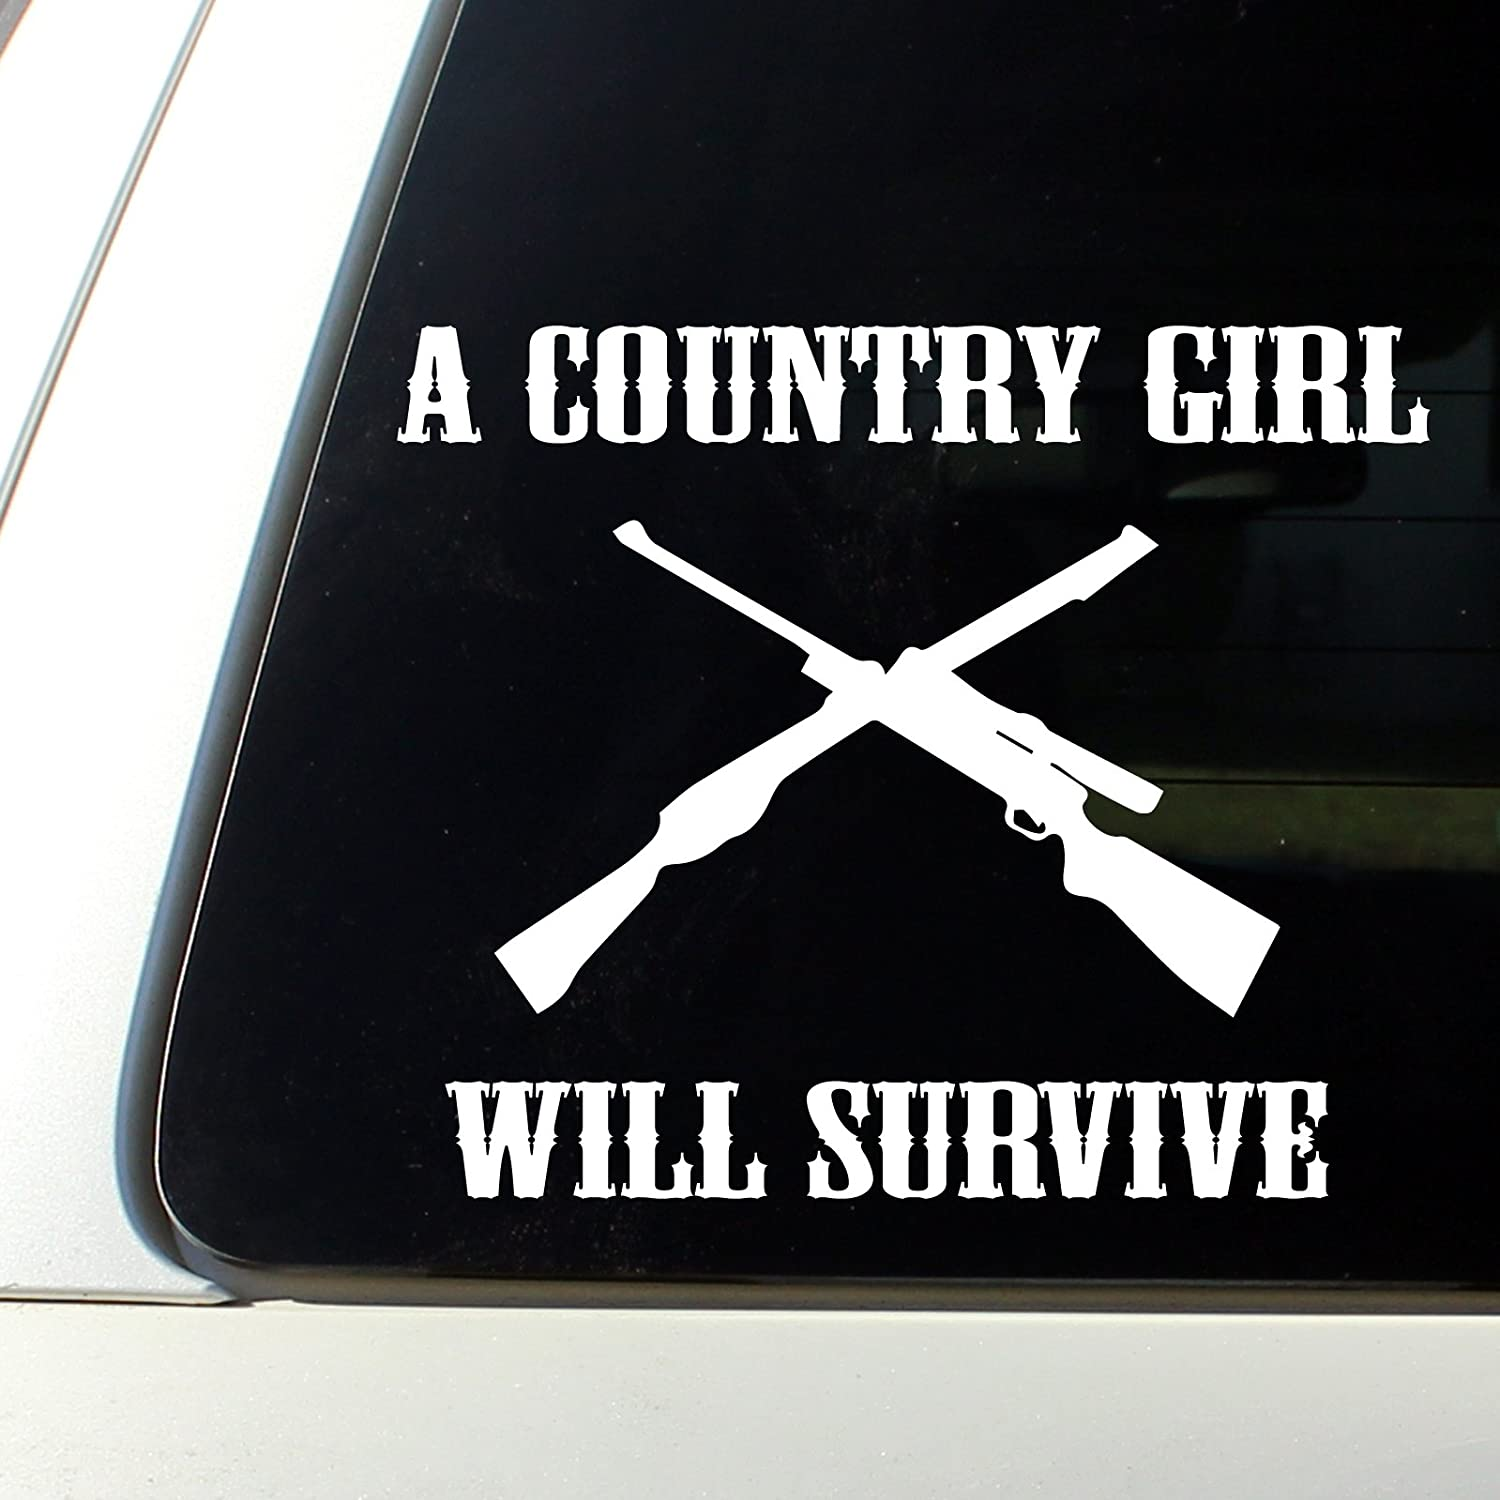 Amazoncom A Country Girl Will Surive Cowgirl Car Decal Bumper - Country girl custom vinyl decals for trucks